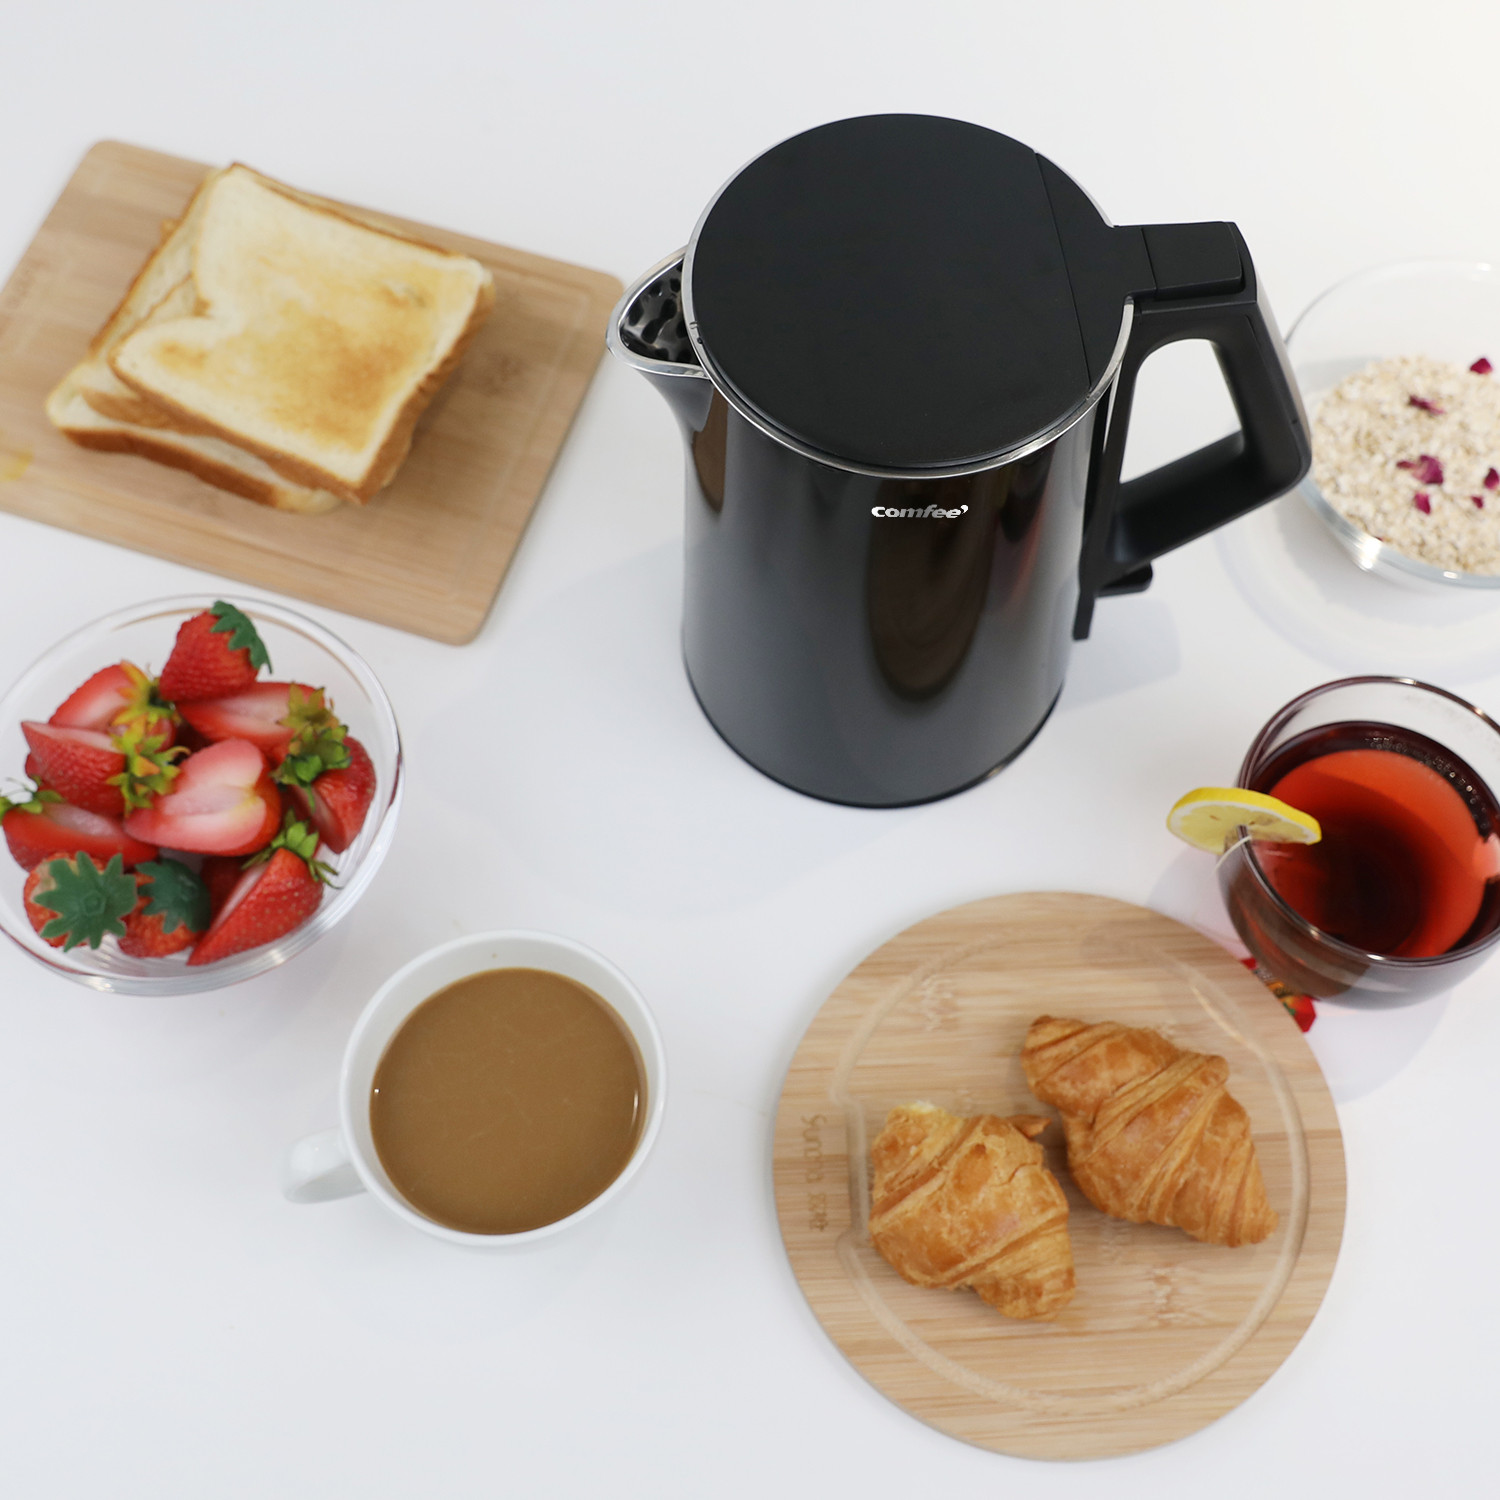 [US Direct] Original COMFEE' 1.5L Double Wall Electric Kettle with Stainless Steel Inner Pot and Lid. Cool Touch/BPA Free. 1500W. Auto Shut-Off/Boil Dry Protection (Black) Black_1.5 L